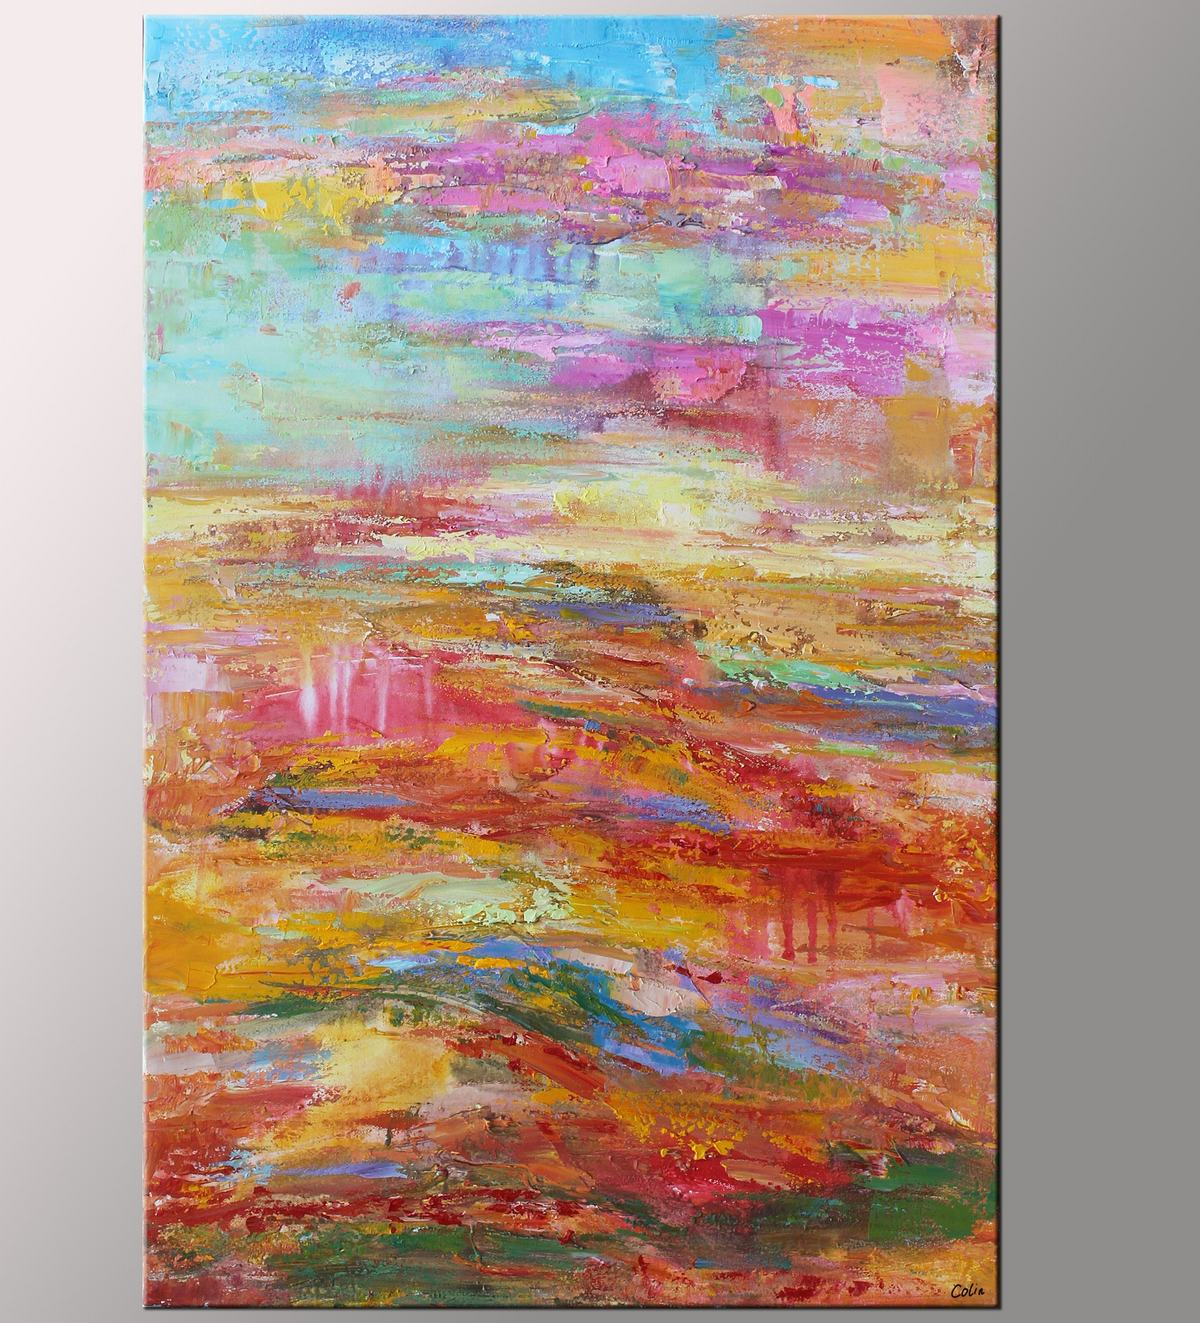 Original Art, Contemporary Art, Canvas Wall Art, Landscape Art, Large Abstract Painting